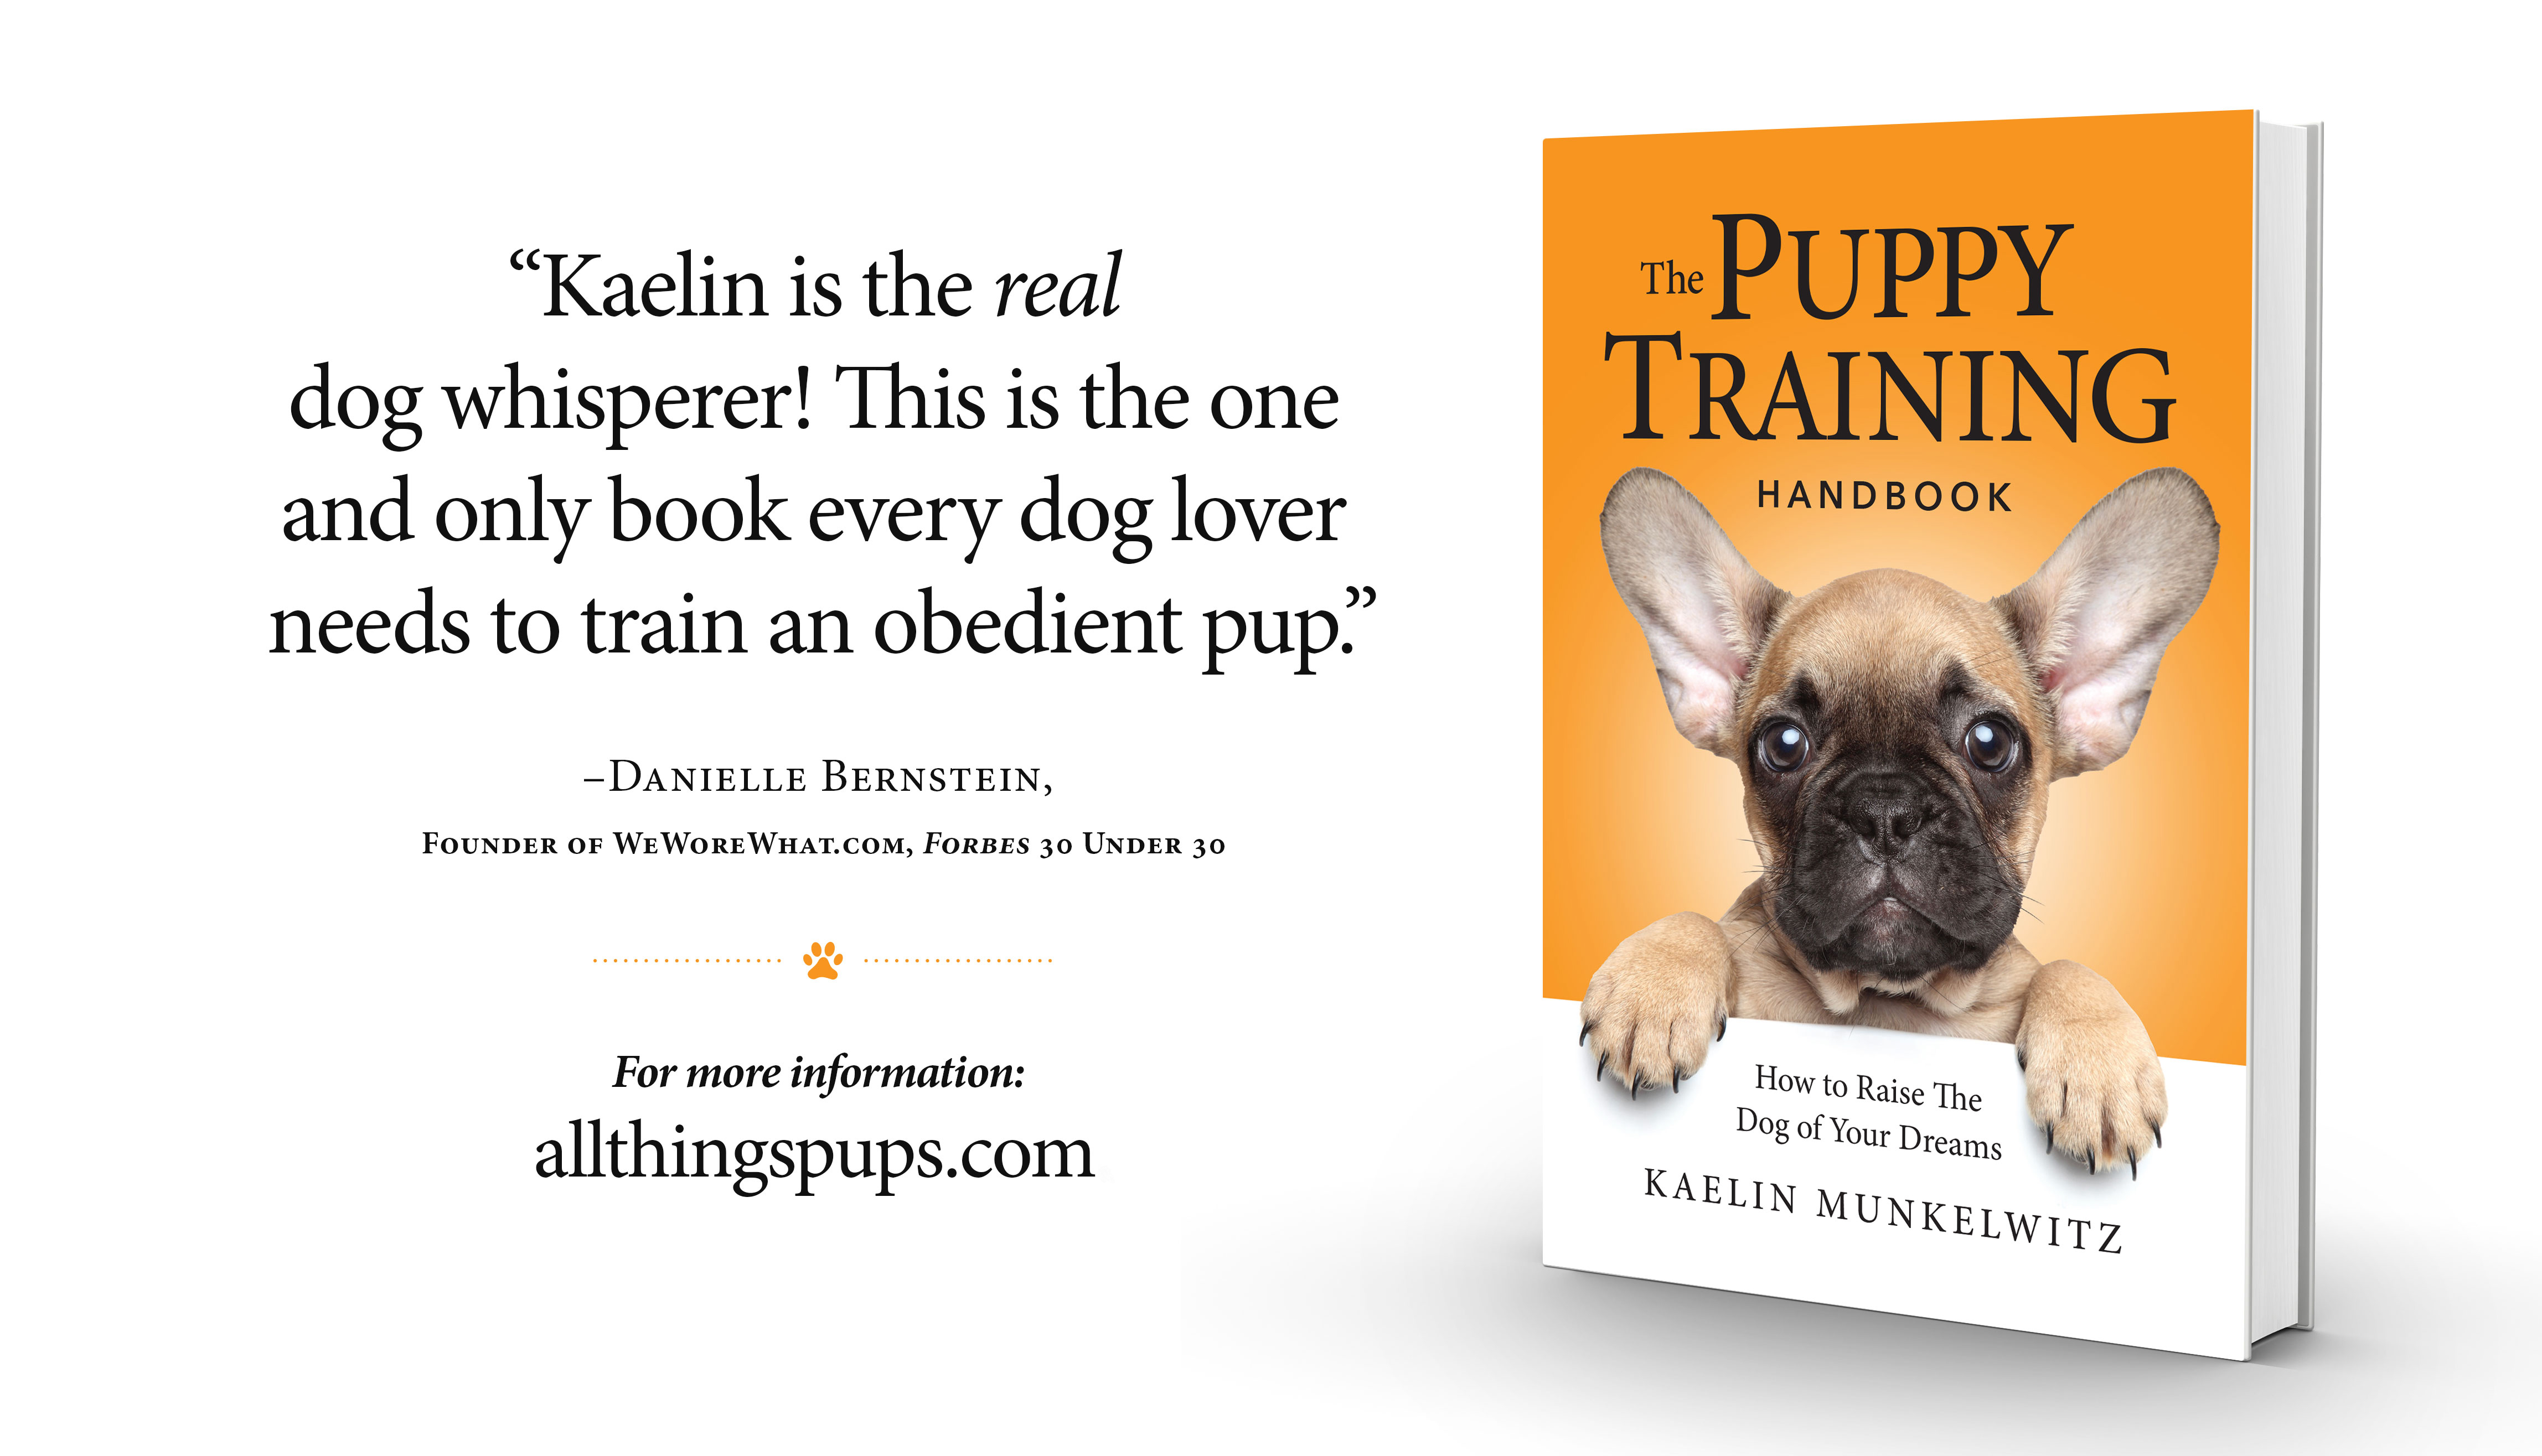 All Things Pups - The Puppy Training Handbook